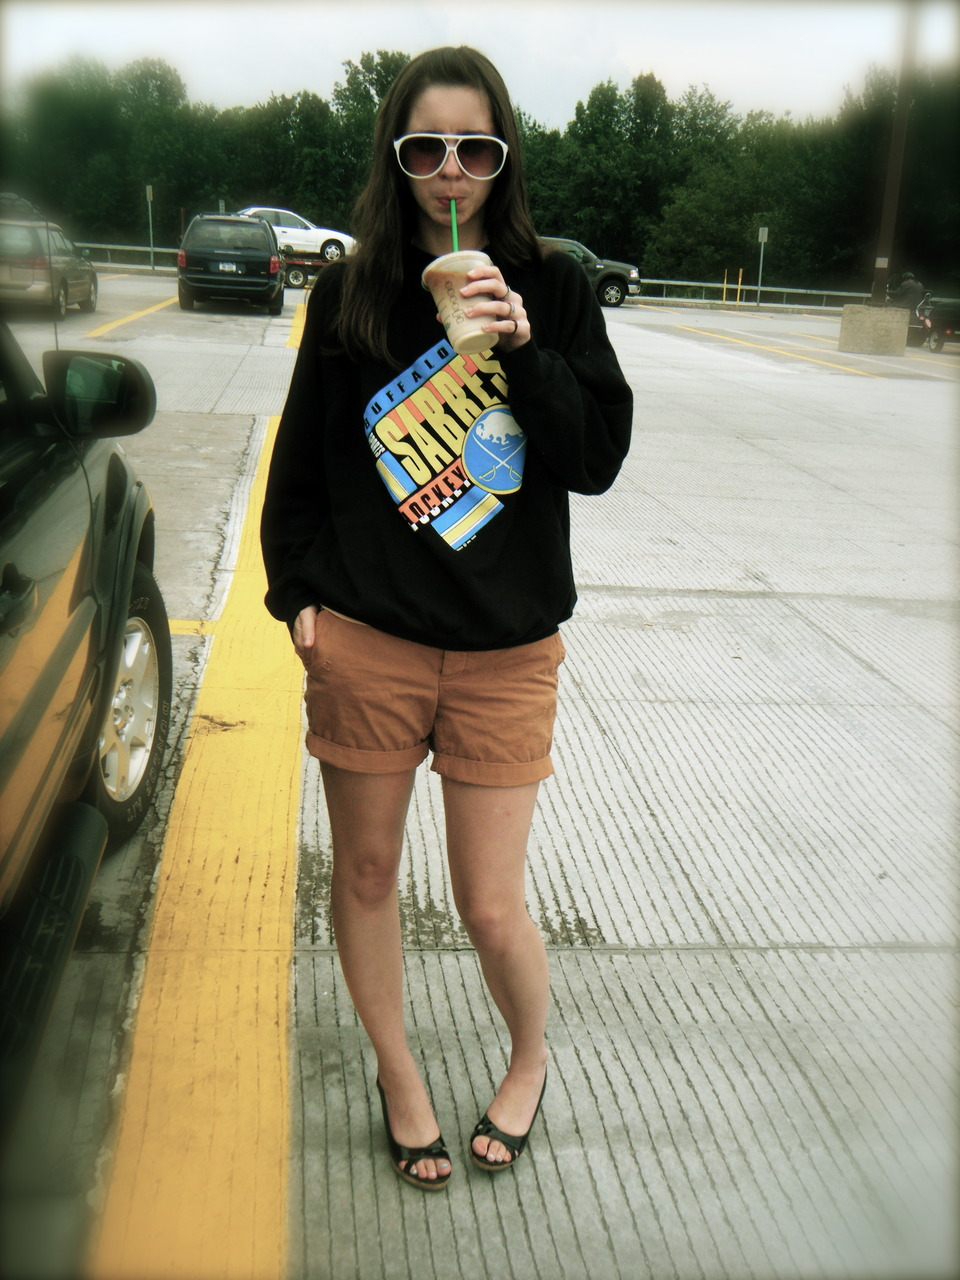 sunglasses: U.O sweatshirt: vintage - Ebay shorts: JCrew Wedges: Steve Madden drink: Starbucks iced white chocolate mocha